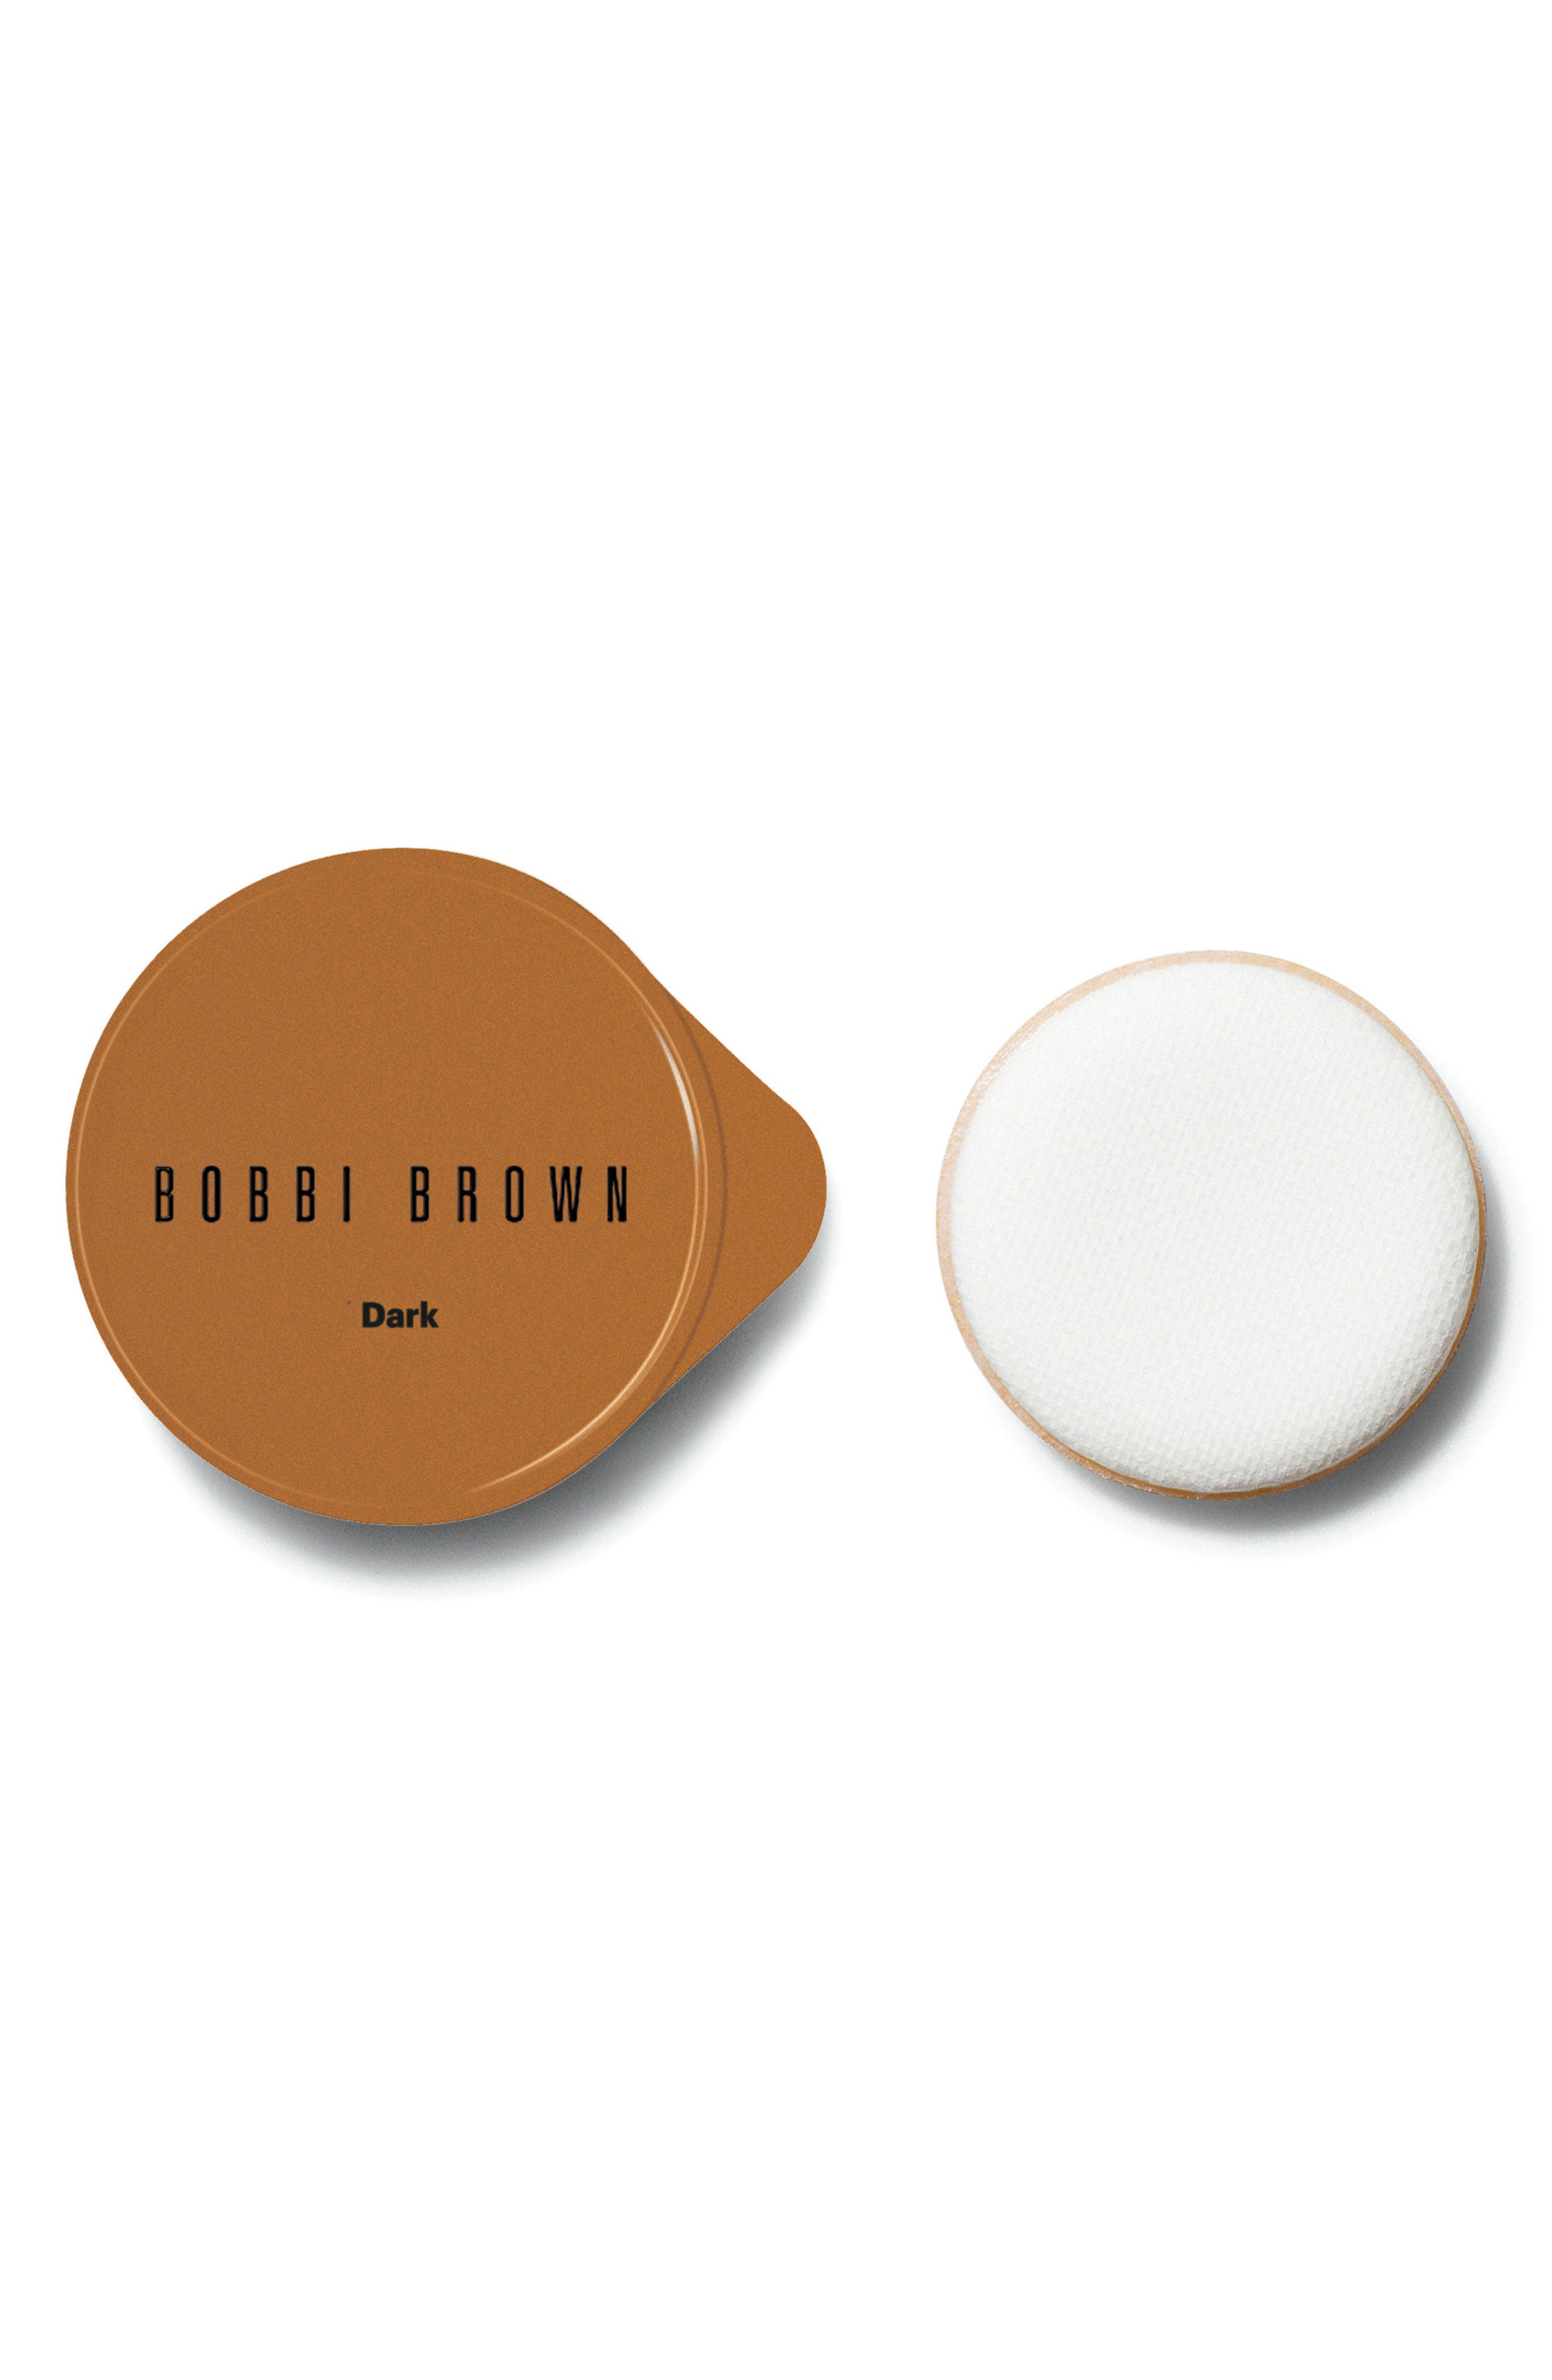 Bobbi Brown Skin Foundation Cushion Compact SPF 35 Refill (Nordstrom Exclusive)